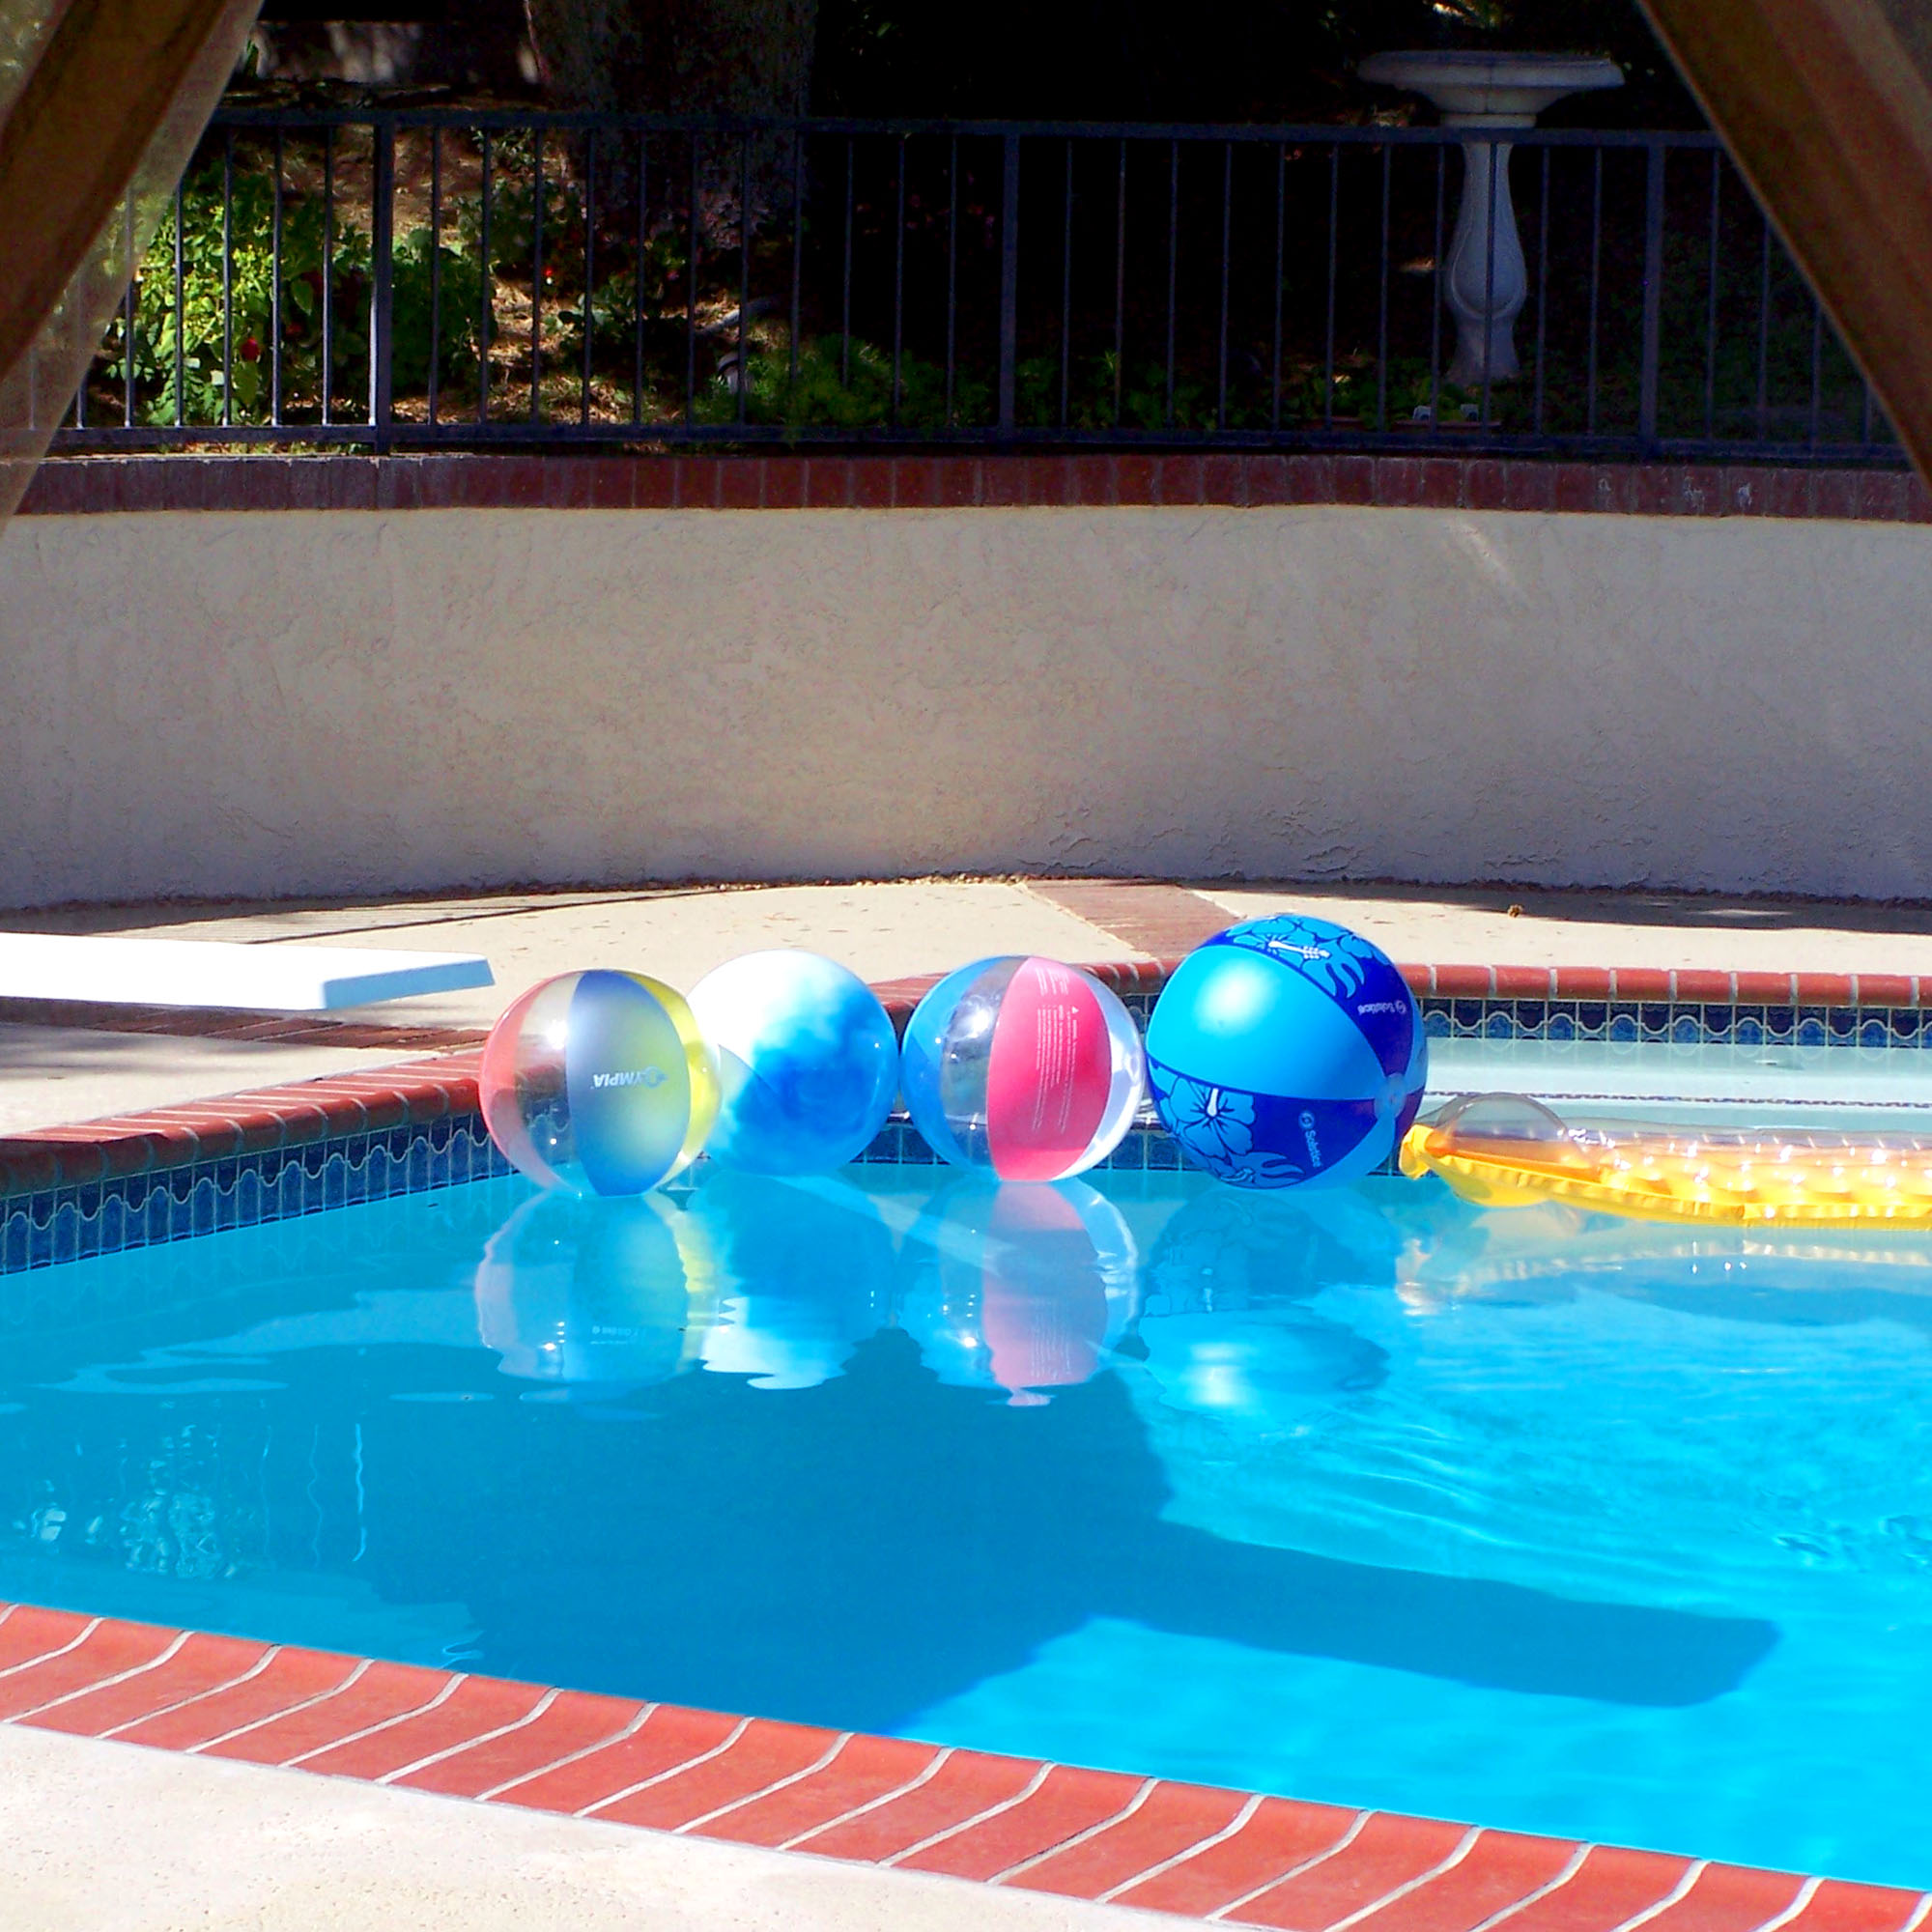 Pool Party Decorations Ideas pool party decorating ideas Aaaah